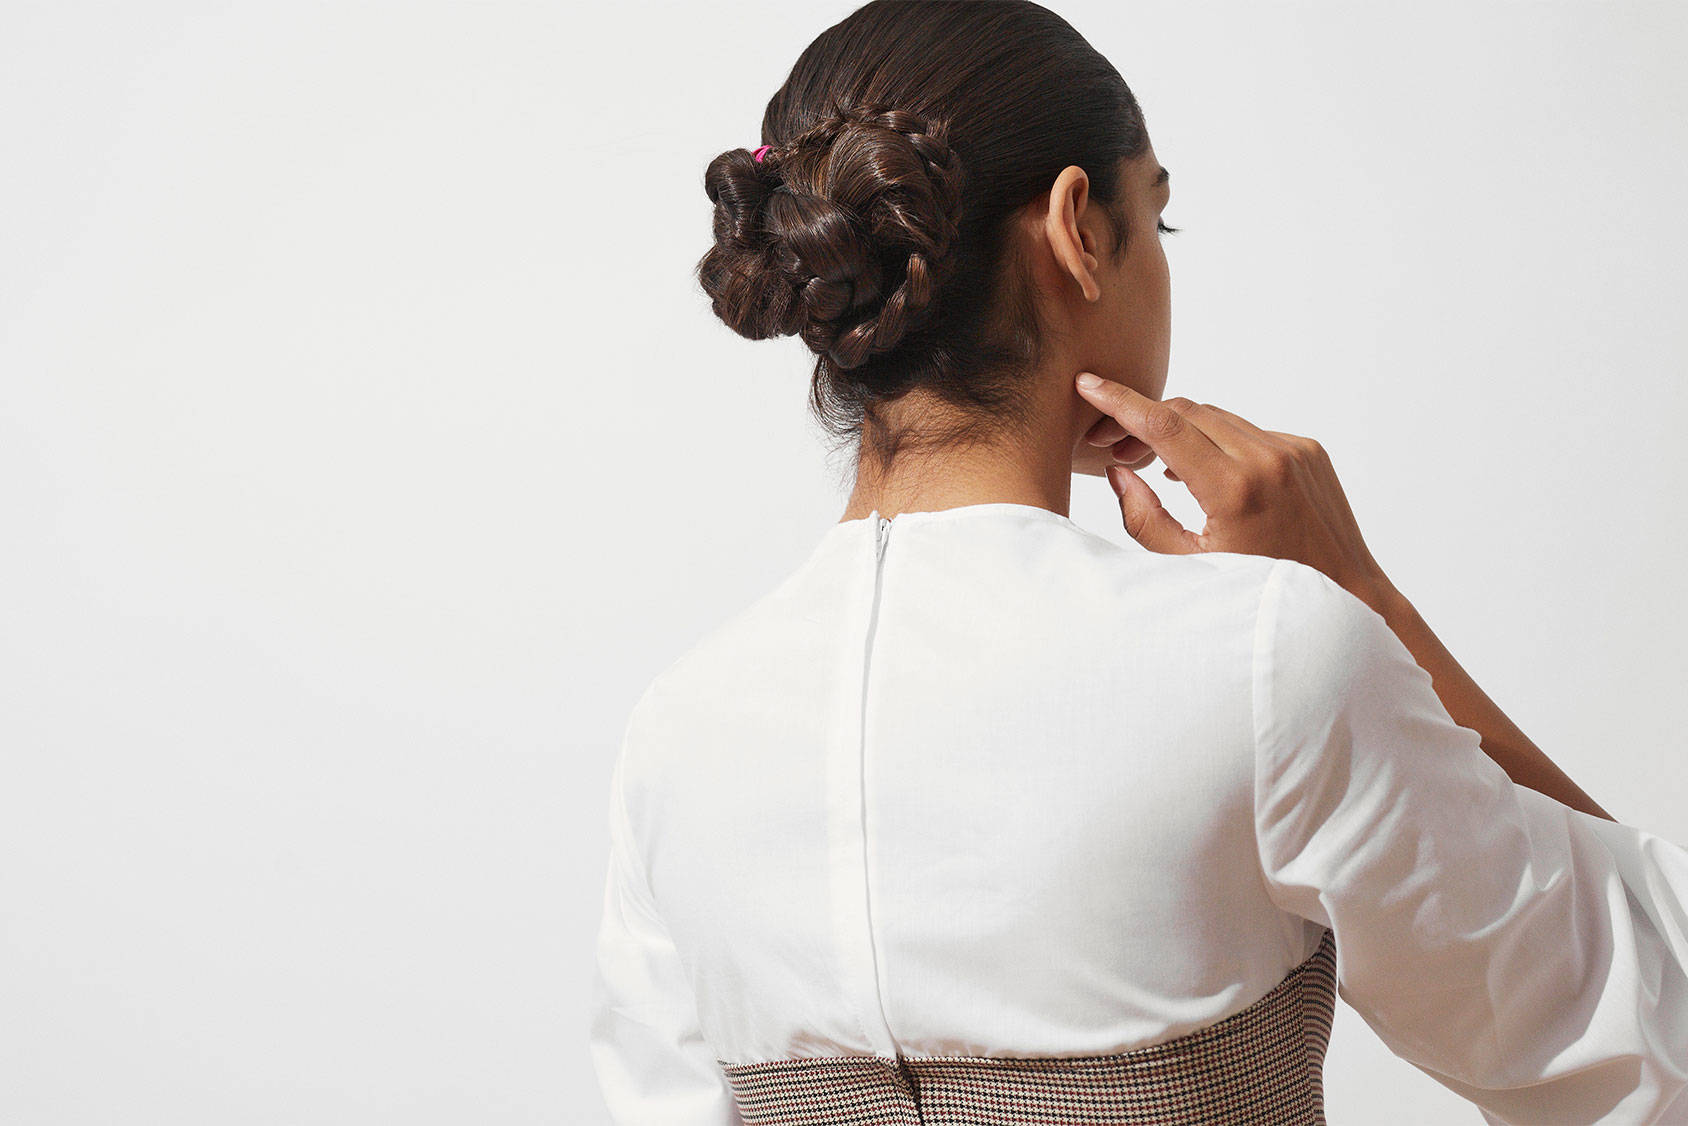 How to succeed with the braided-updo